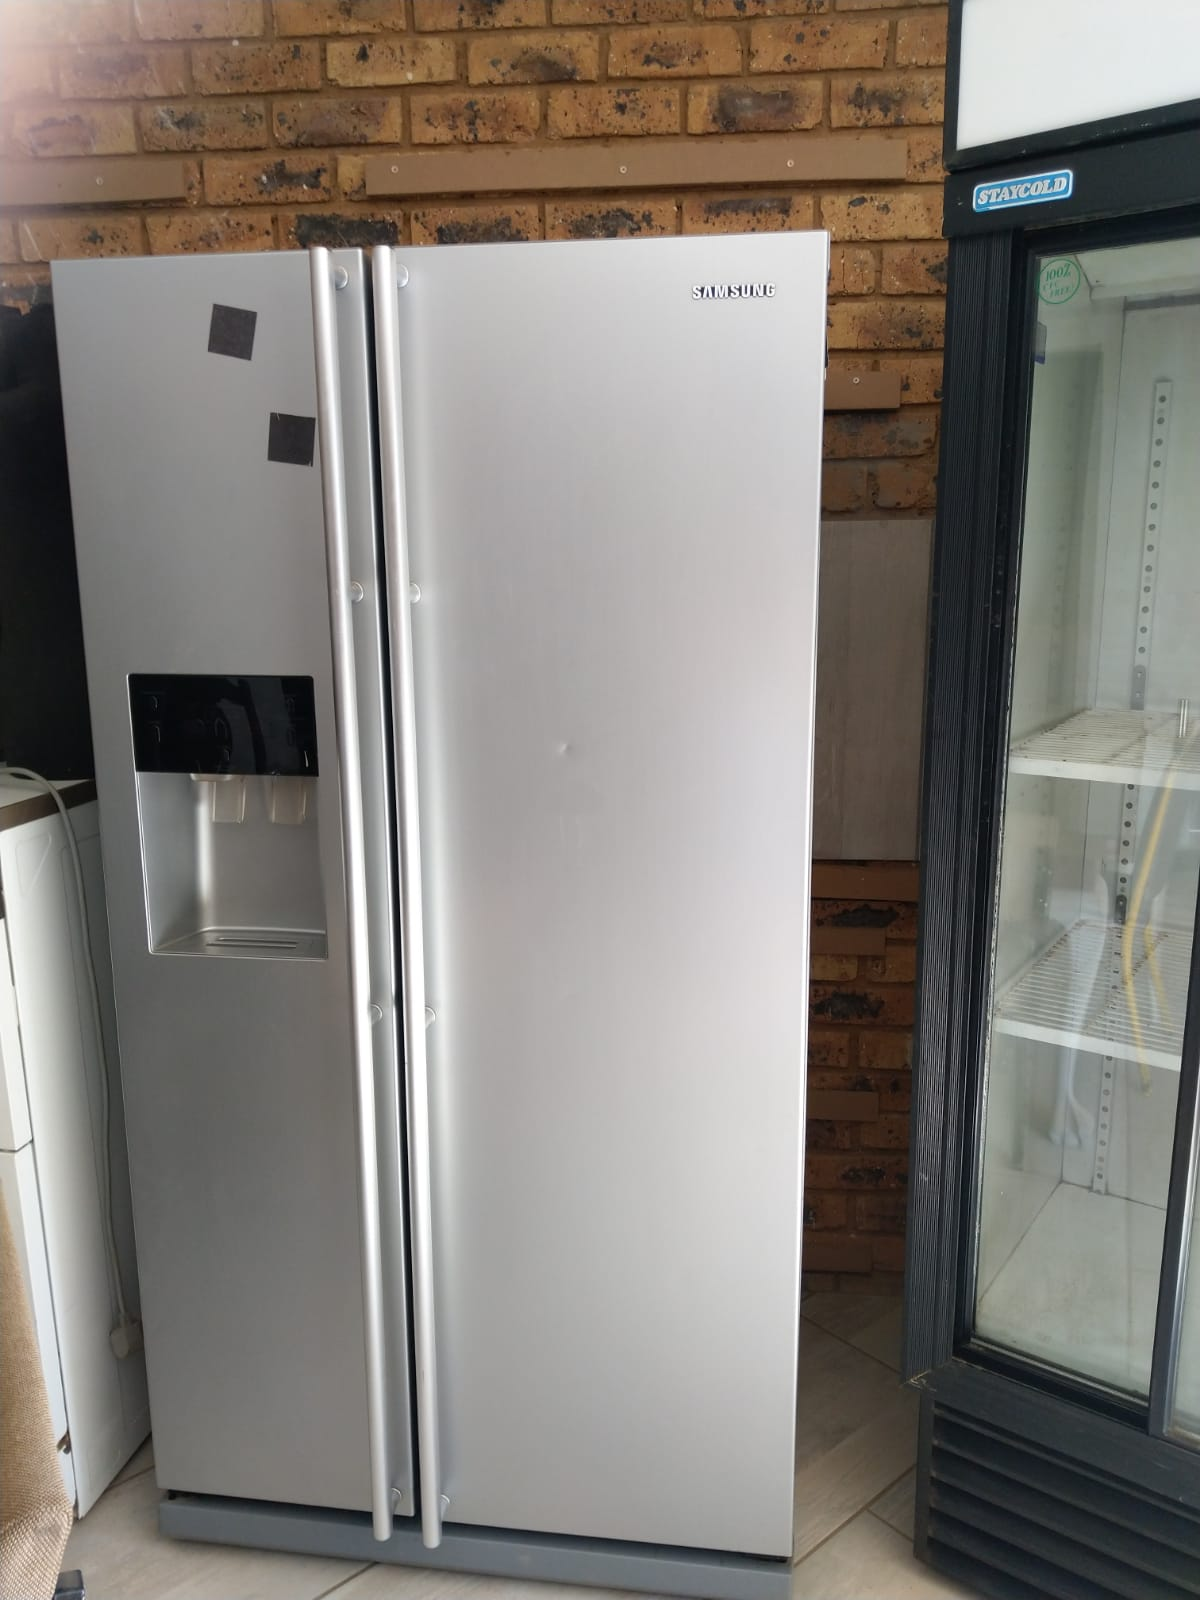 Samsung double door fridge freezer for sale